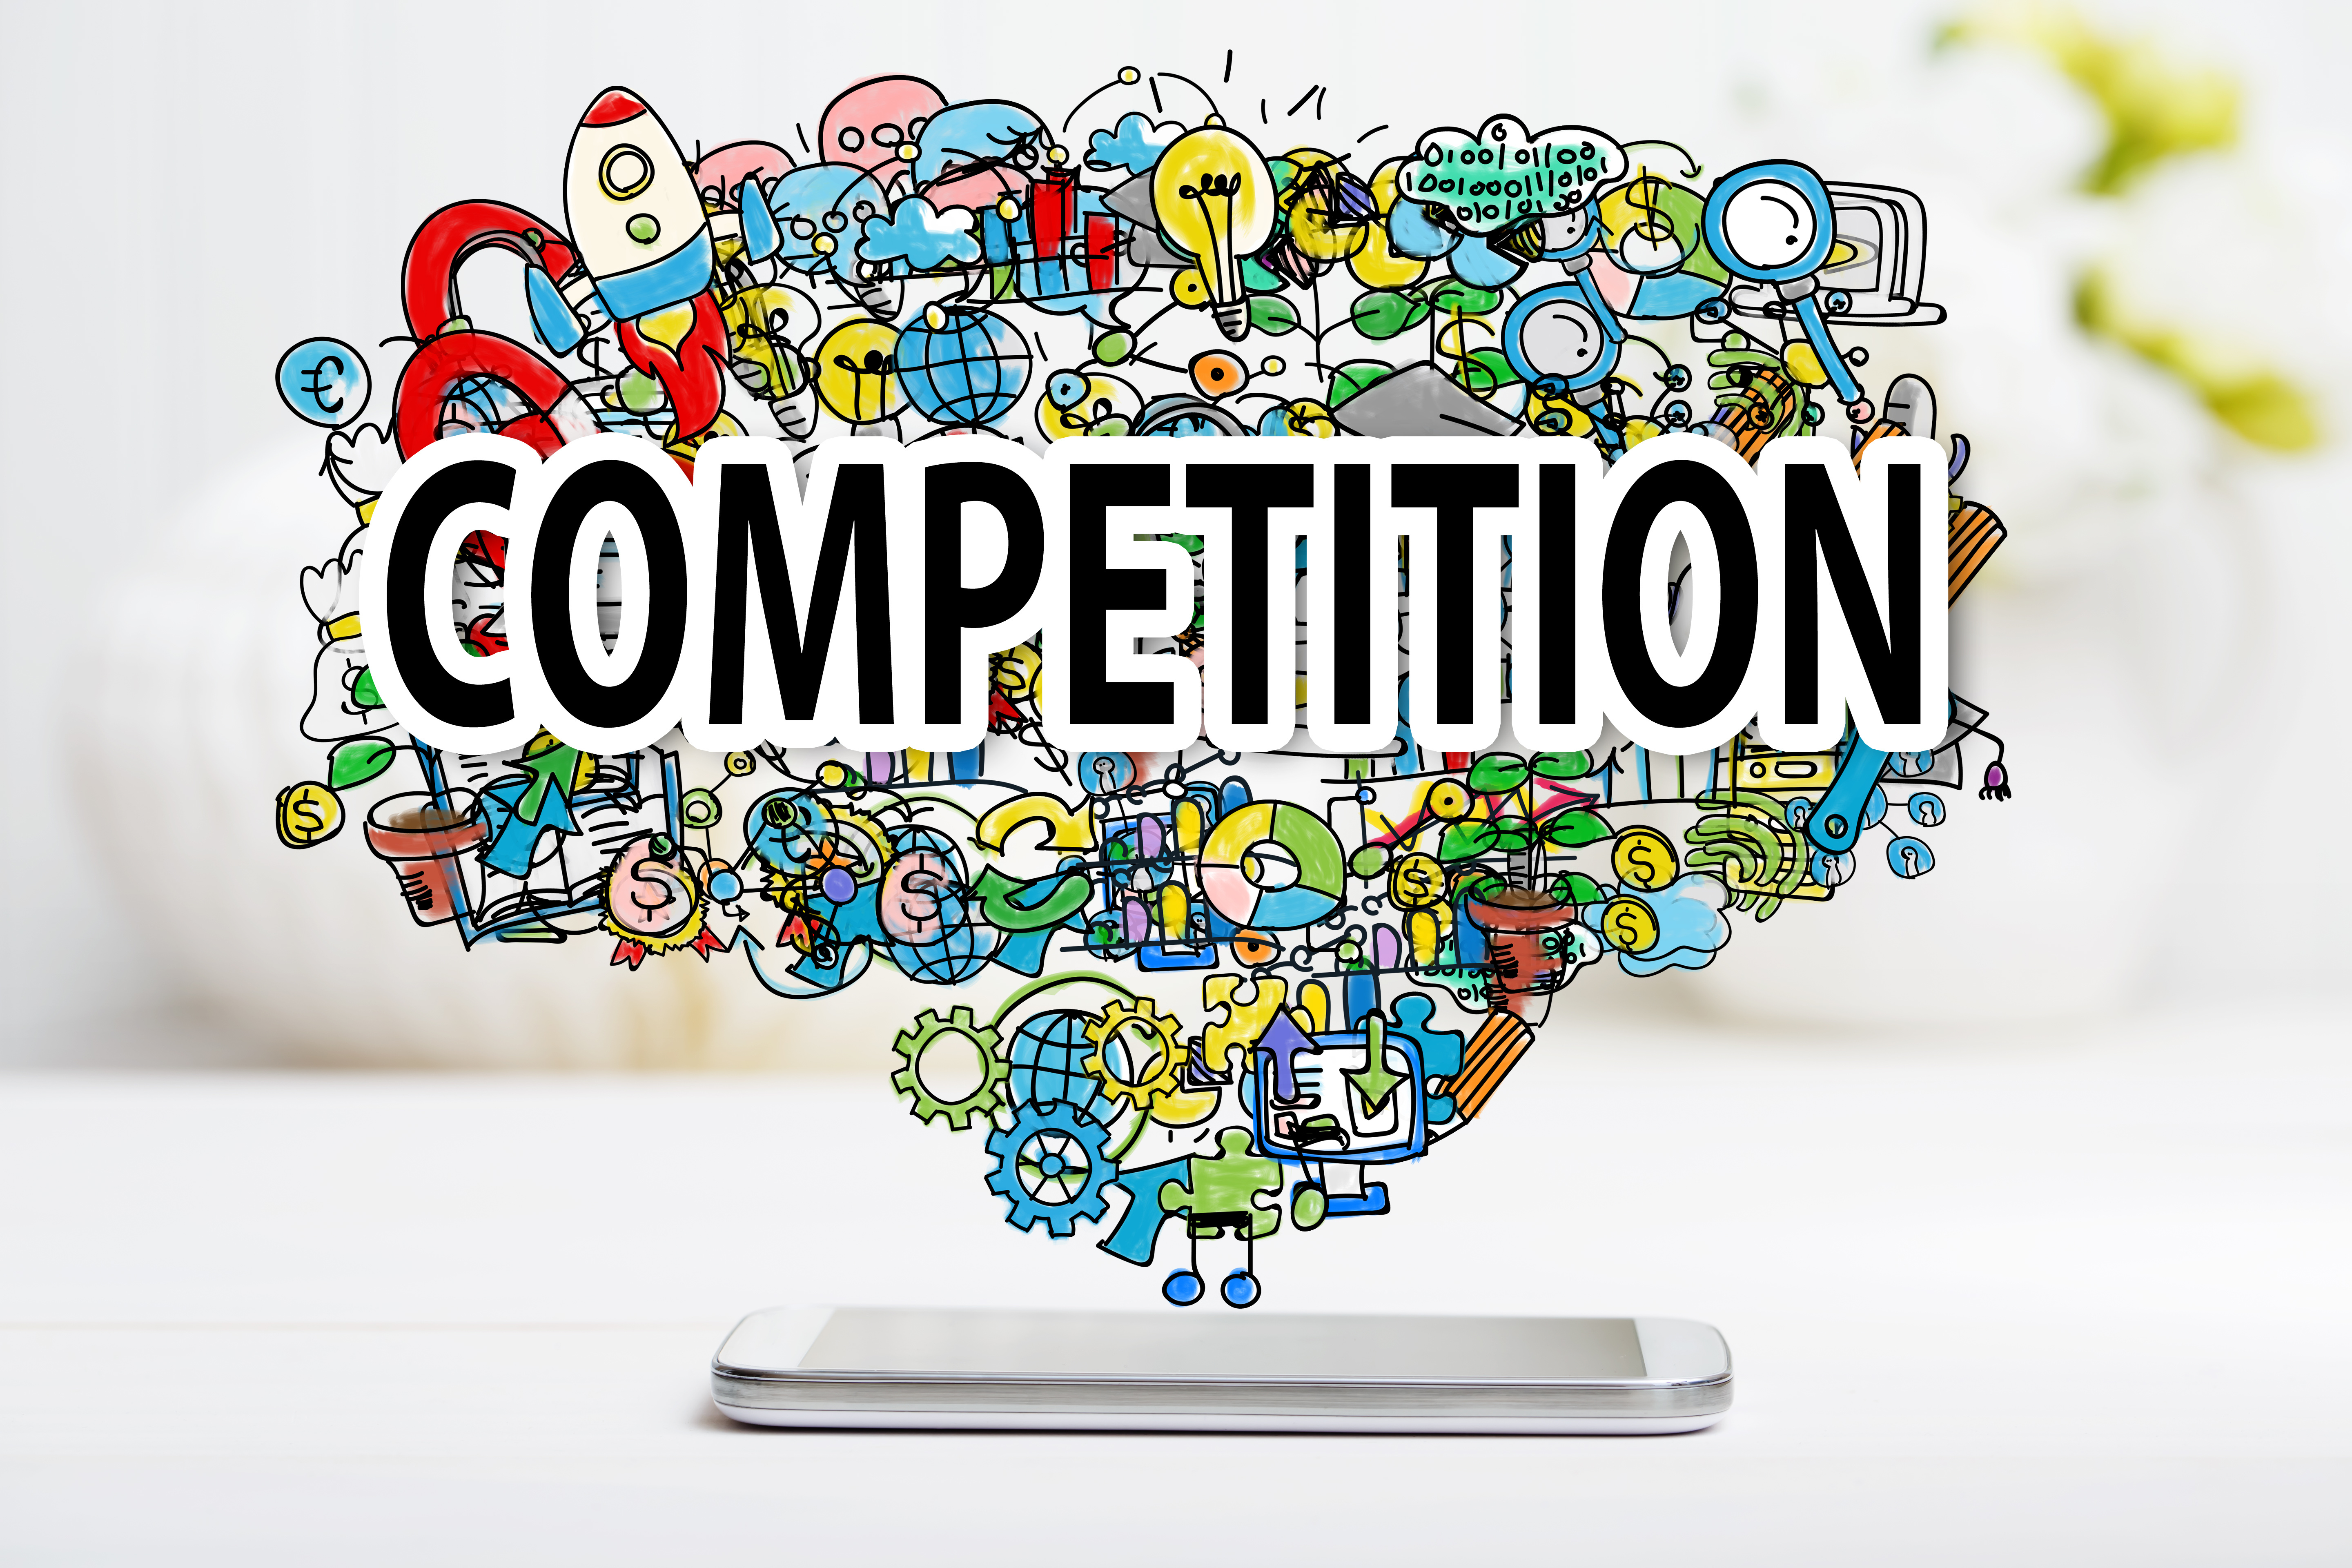 How to Deal with Competition images